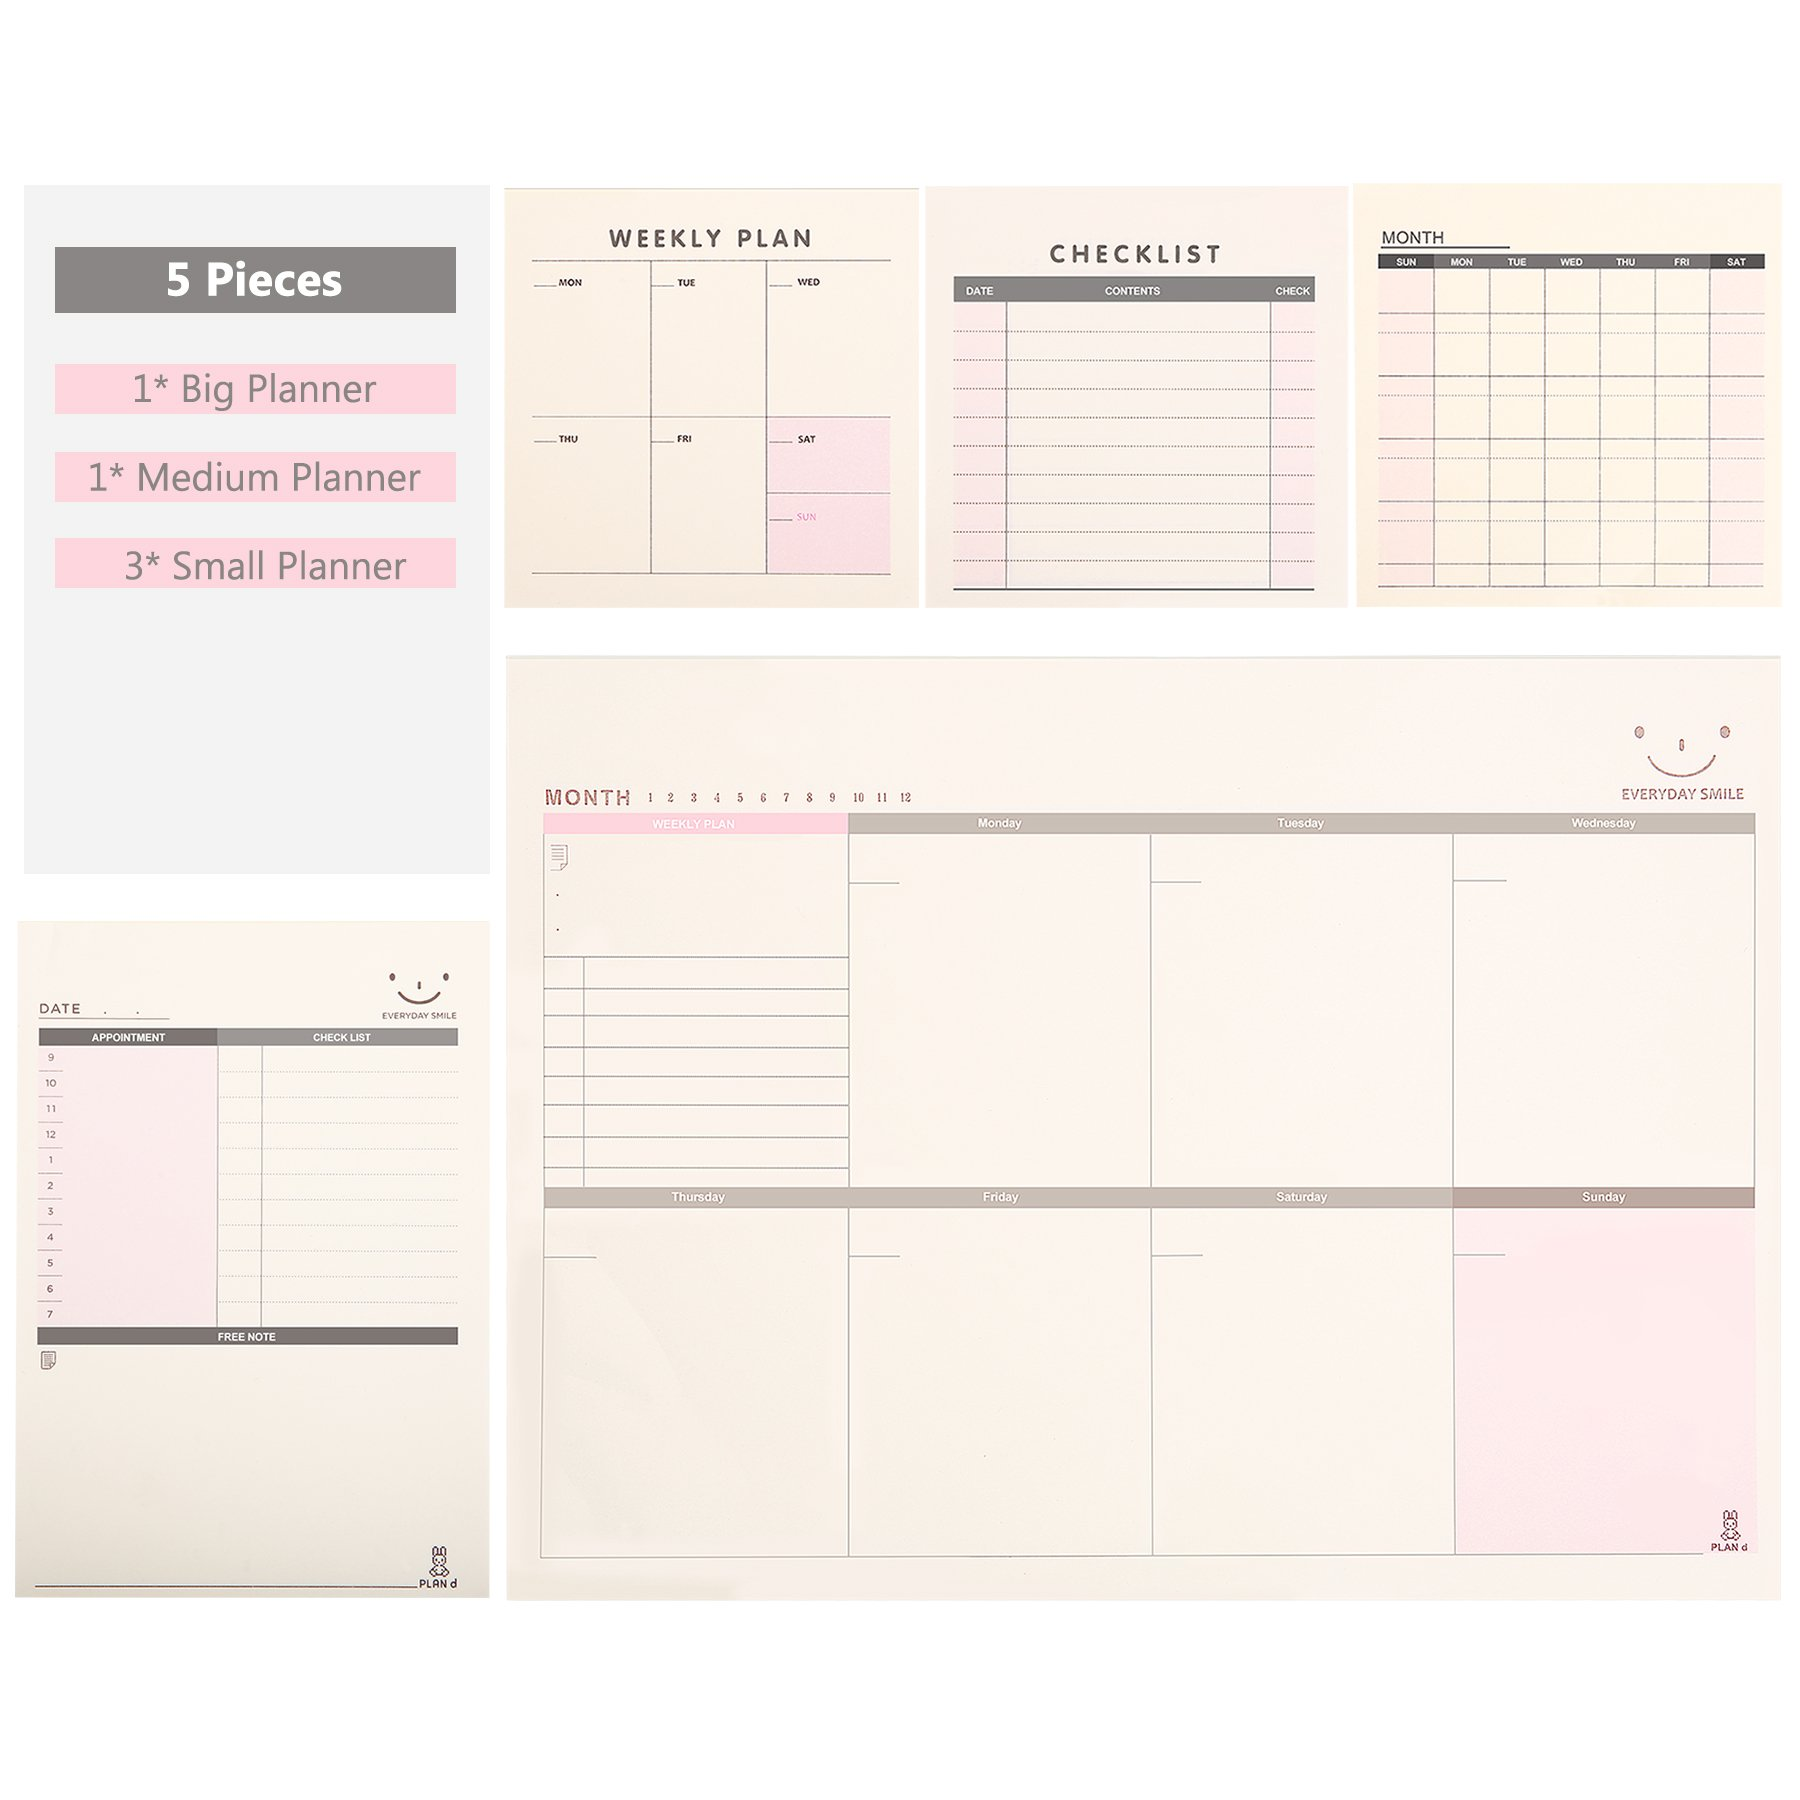 Skydue 2018 Happy Planner, Daily Weekly Monthly Planner Pad, Checklist To-Do List Notes - 5 Sets, Large, Medium, Small Planners